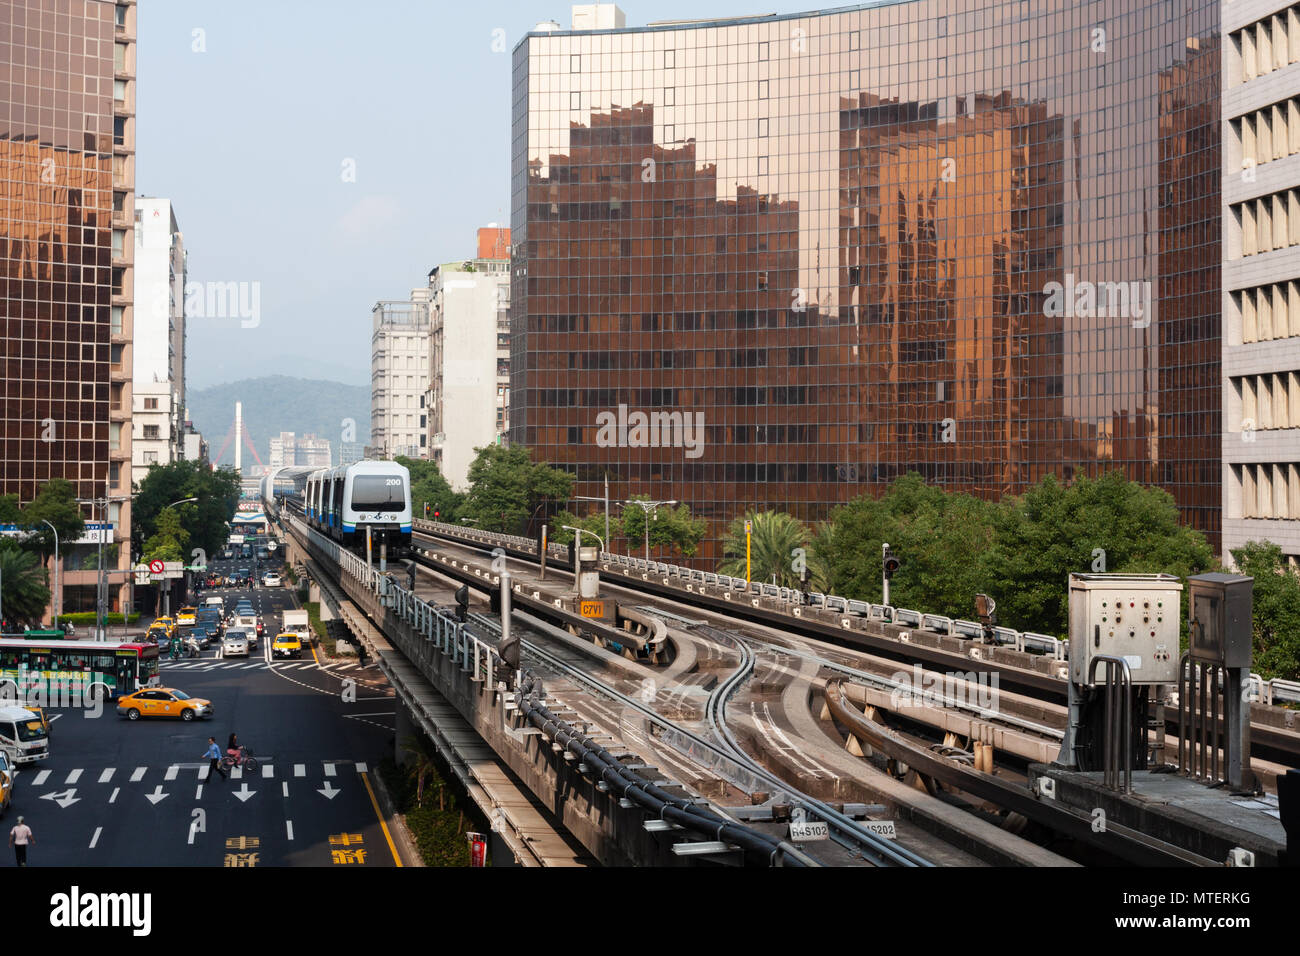 Train on the north side of Taipei MRT (Mass Rapid Transit) Zhongshan Junior High School Station, Wenhu Line (Brown Line), Taipei, Taiwan - Stock Image